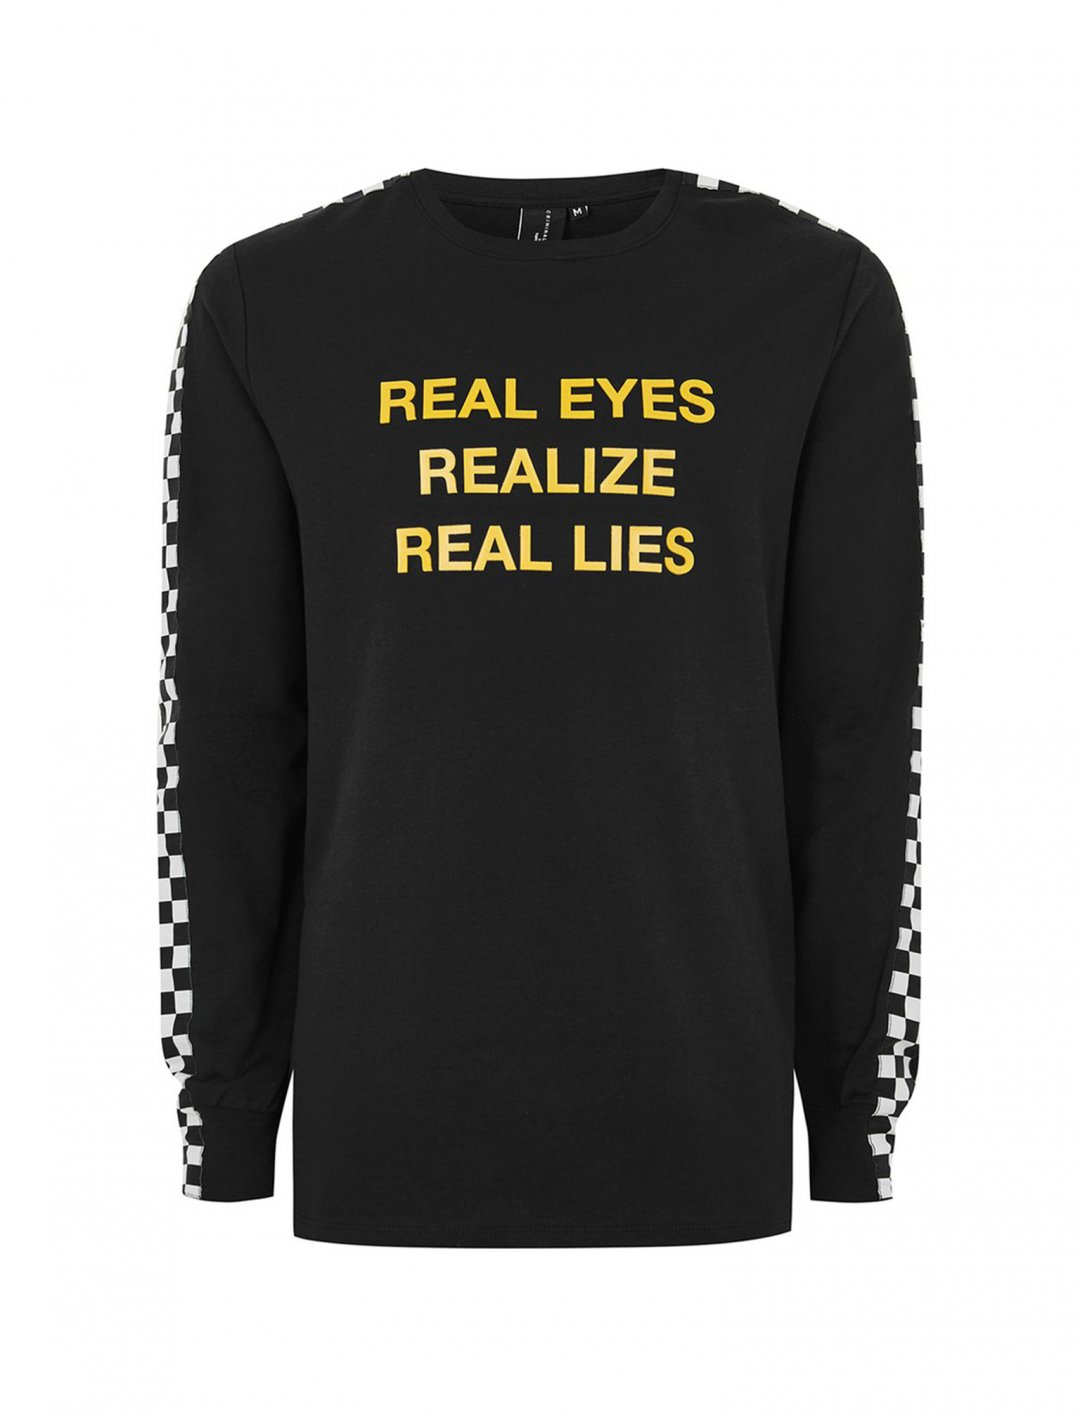 "'Real Lies' T-Shirt {""id"":5,""product_section_id"":1,""name"":""Clothing"",""order"":5} Criminal Damage"